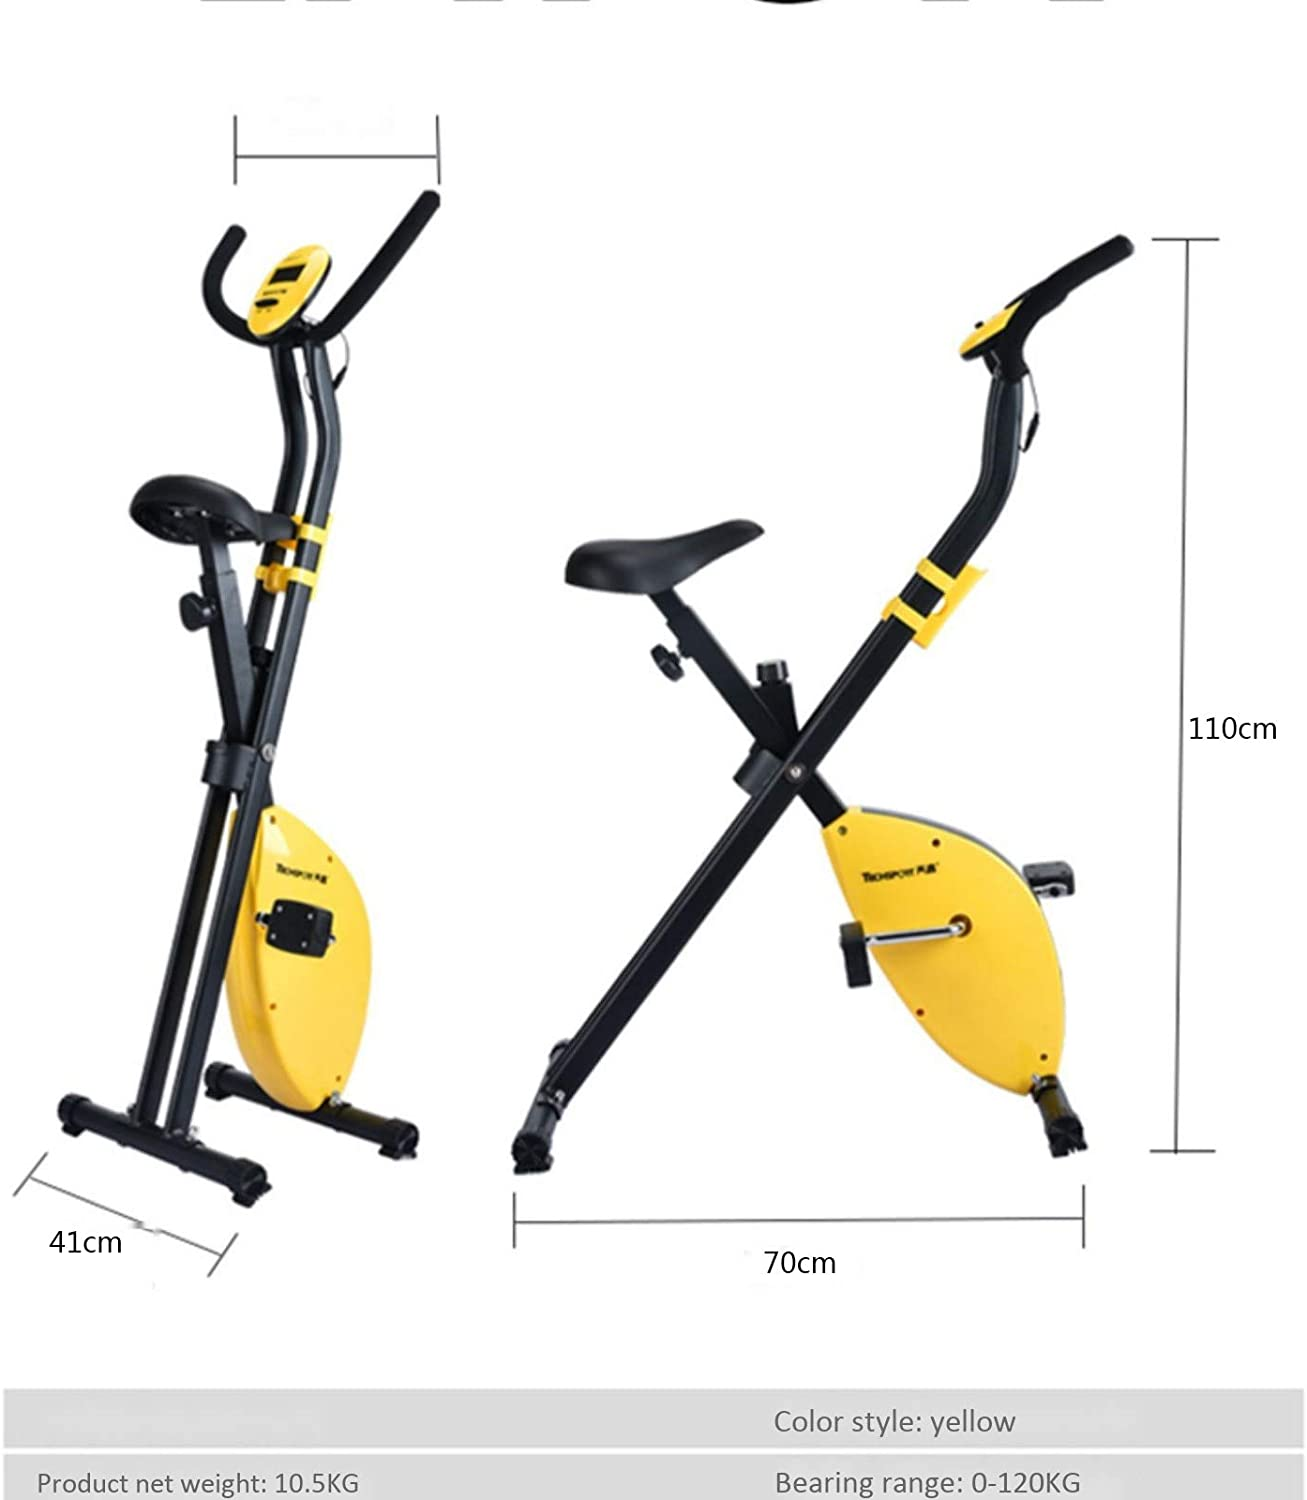 YMXLXL F-Bike And F-Rider Sporting Equipment Fitness Bike And Ab Trainer Ideal Cardio Trainer,Yellow